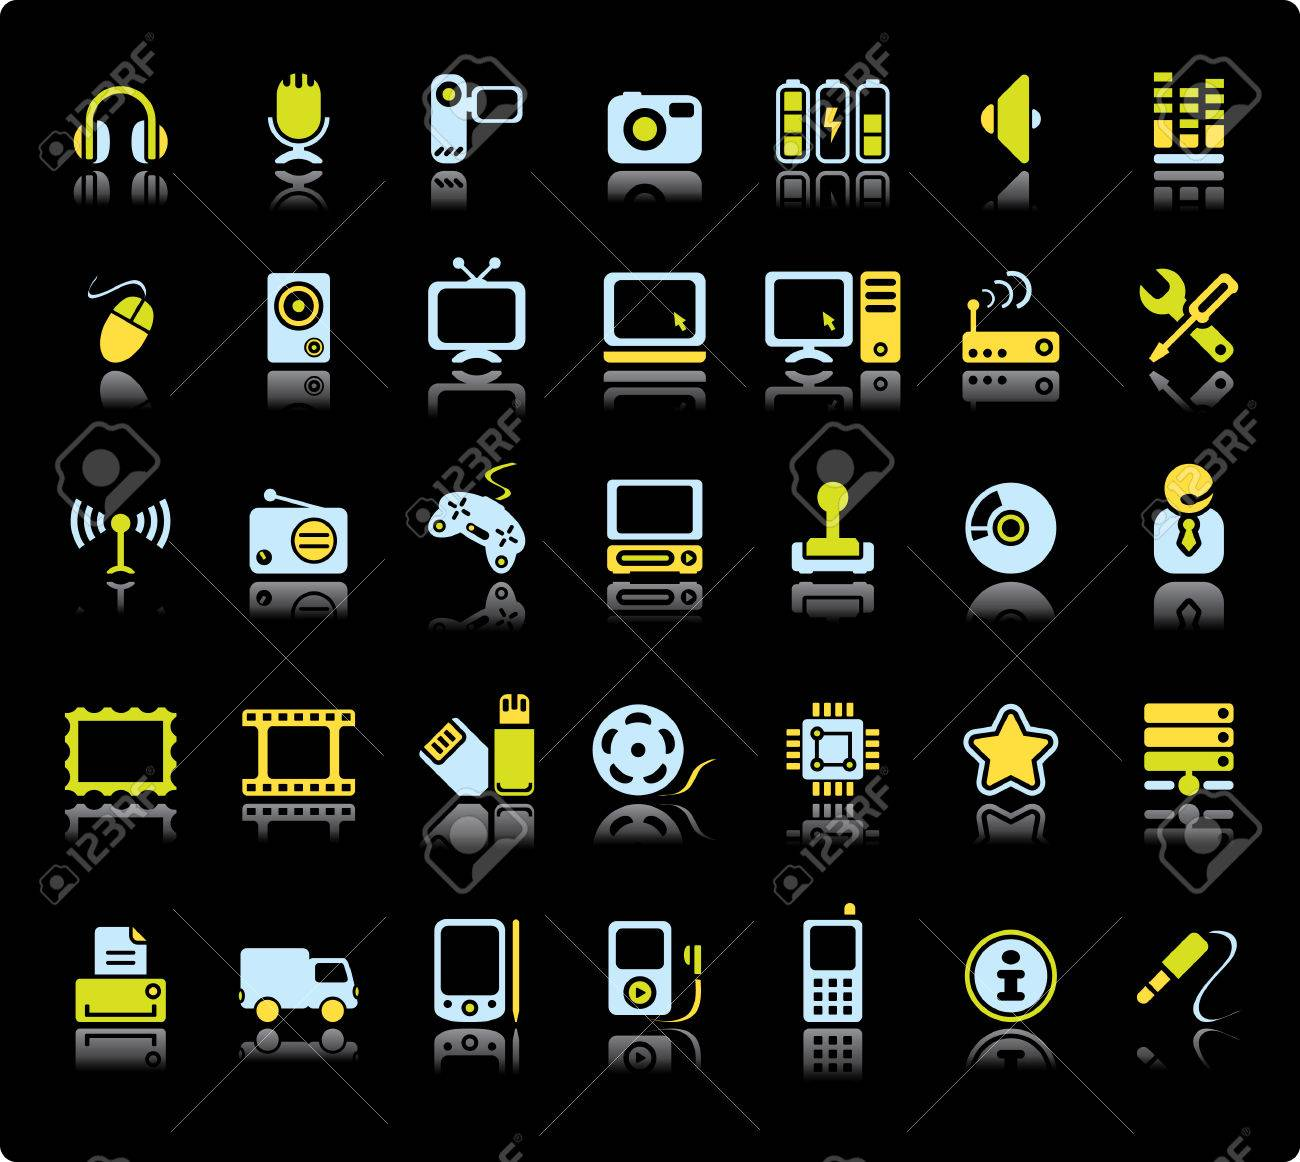 Web Vector Icon Set On Black Background. Audio And Video Symbols. Stock Vector - 3878342